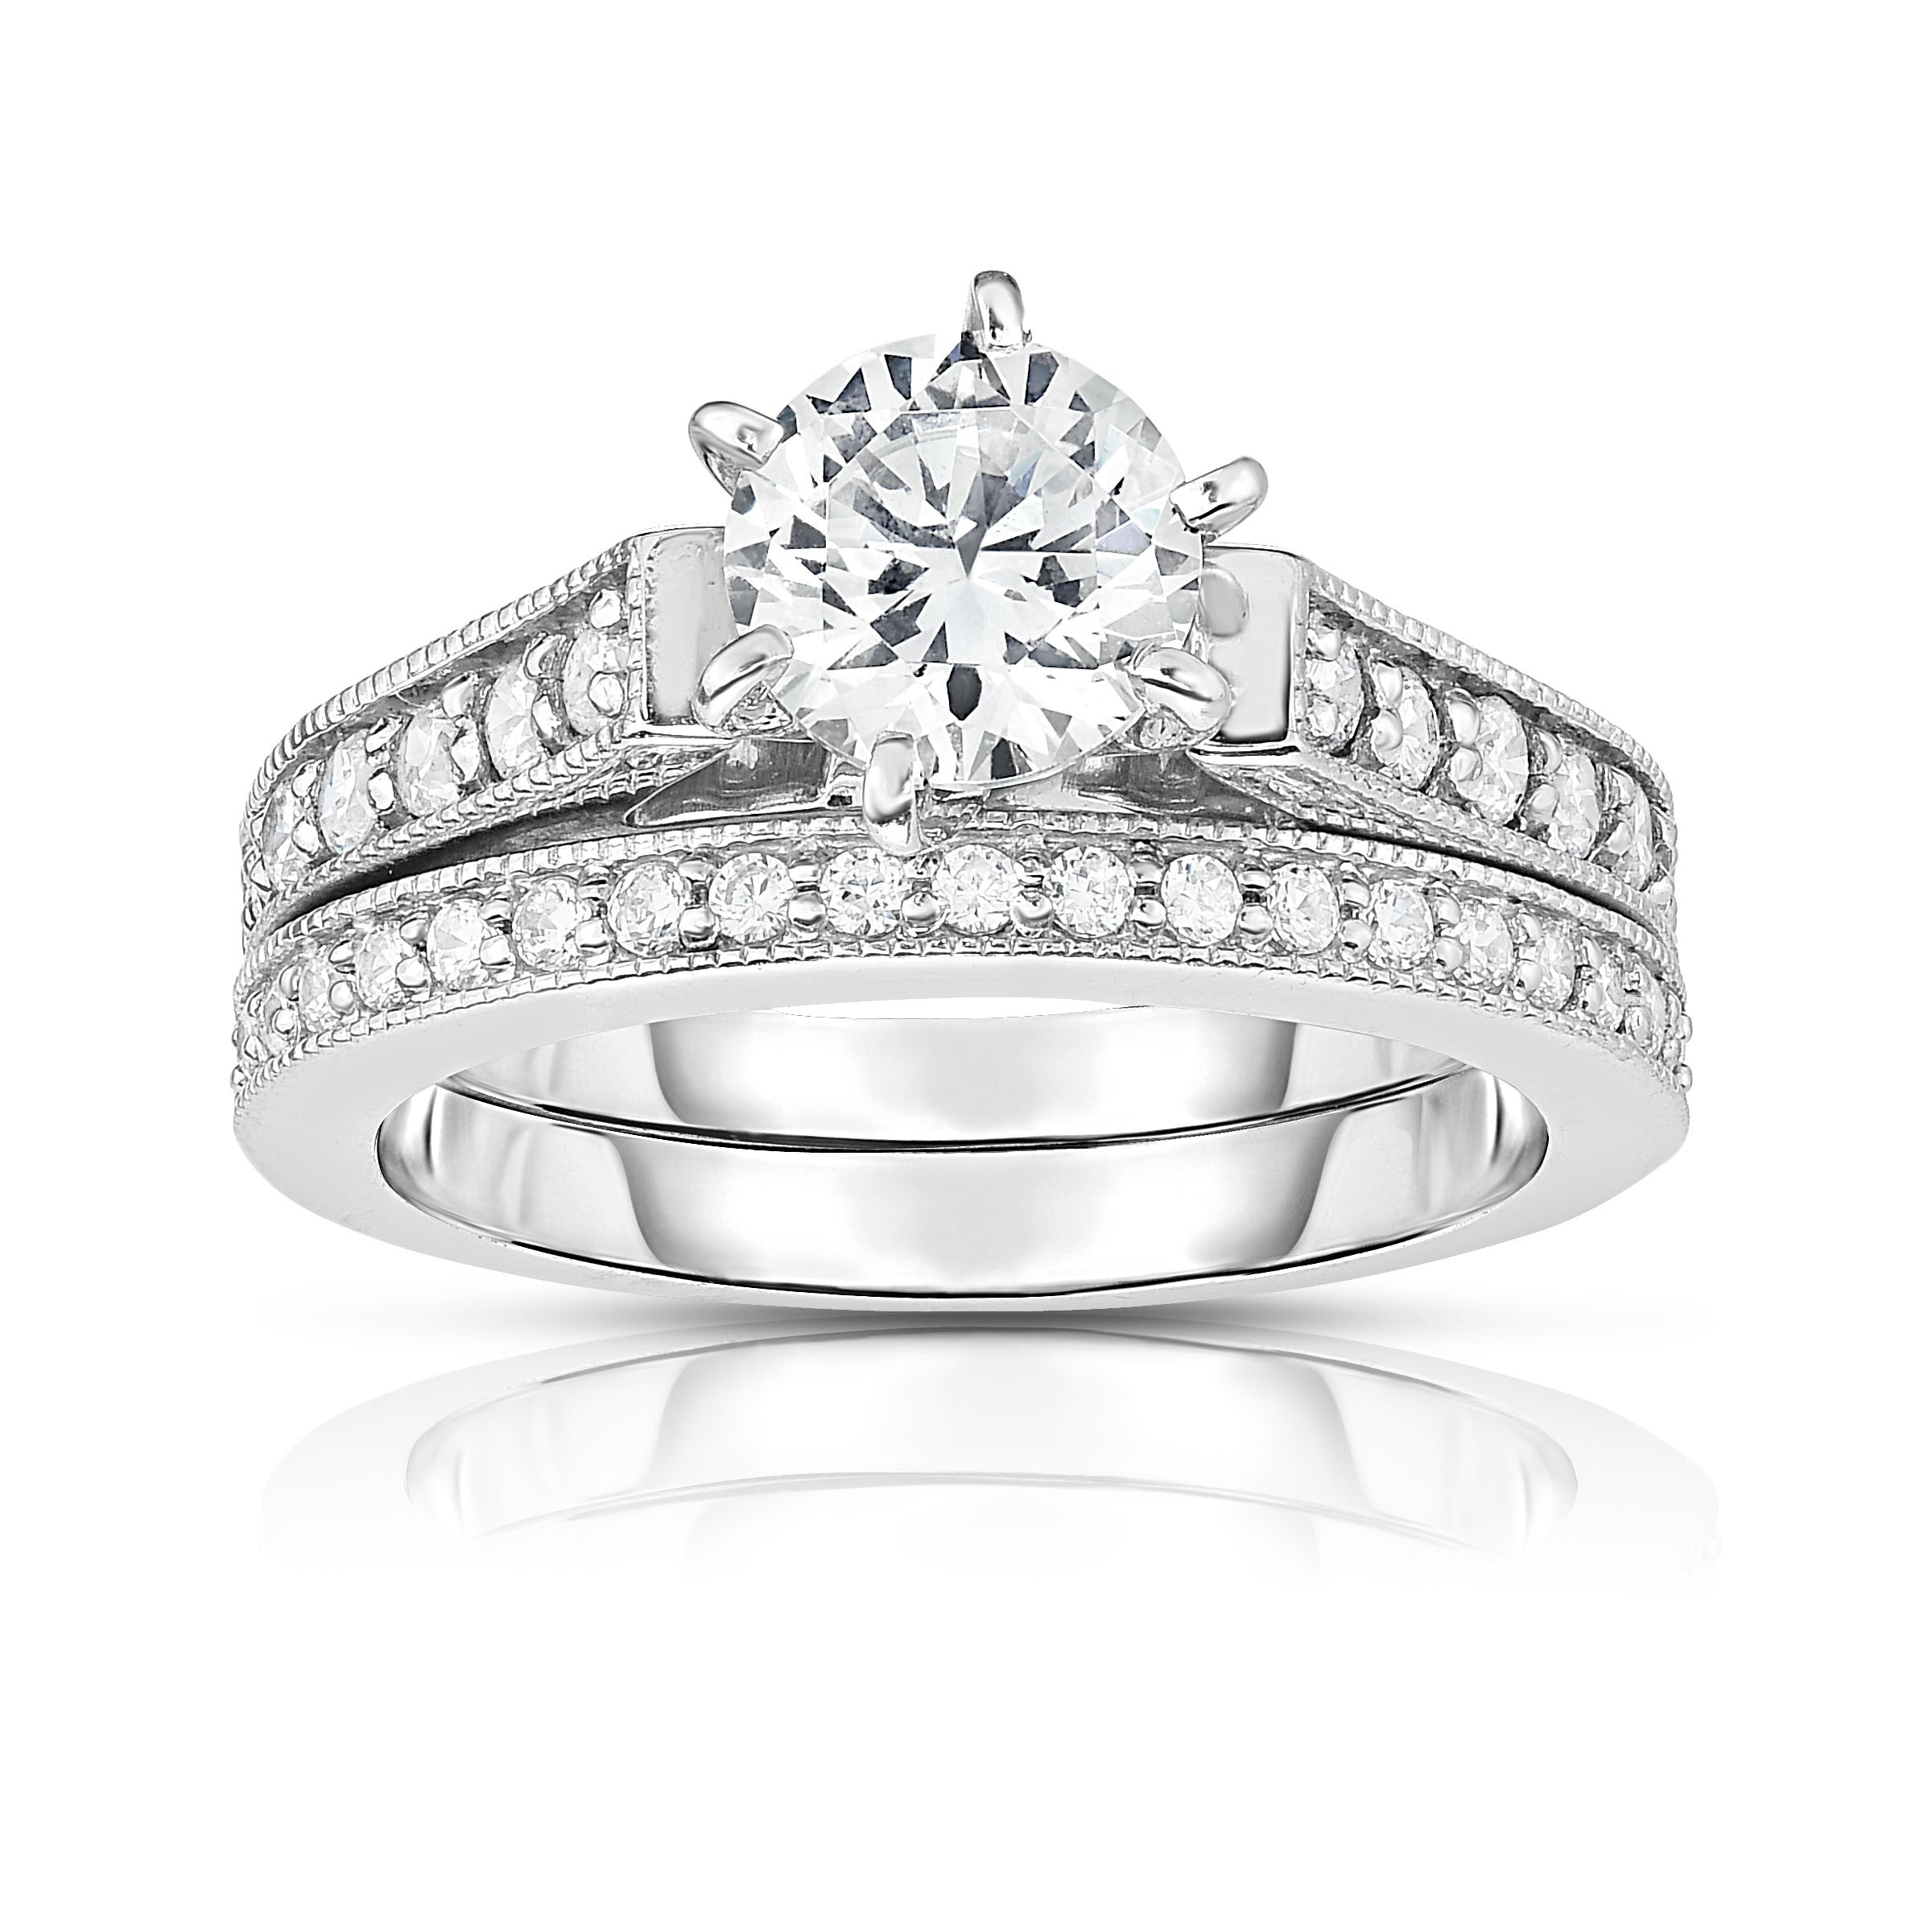 dia semi rings band solitaire in products c w total engagement prong signature on gold hof white hearts ring fire carats mount